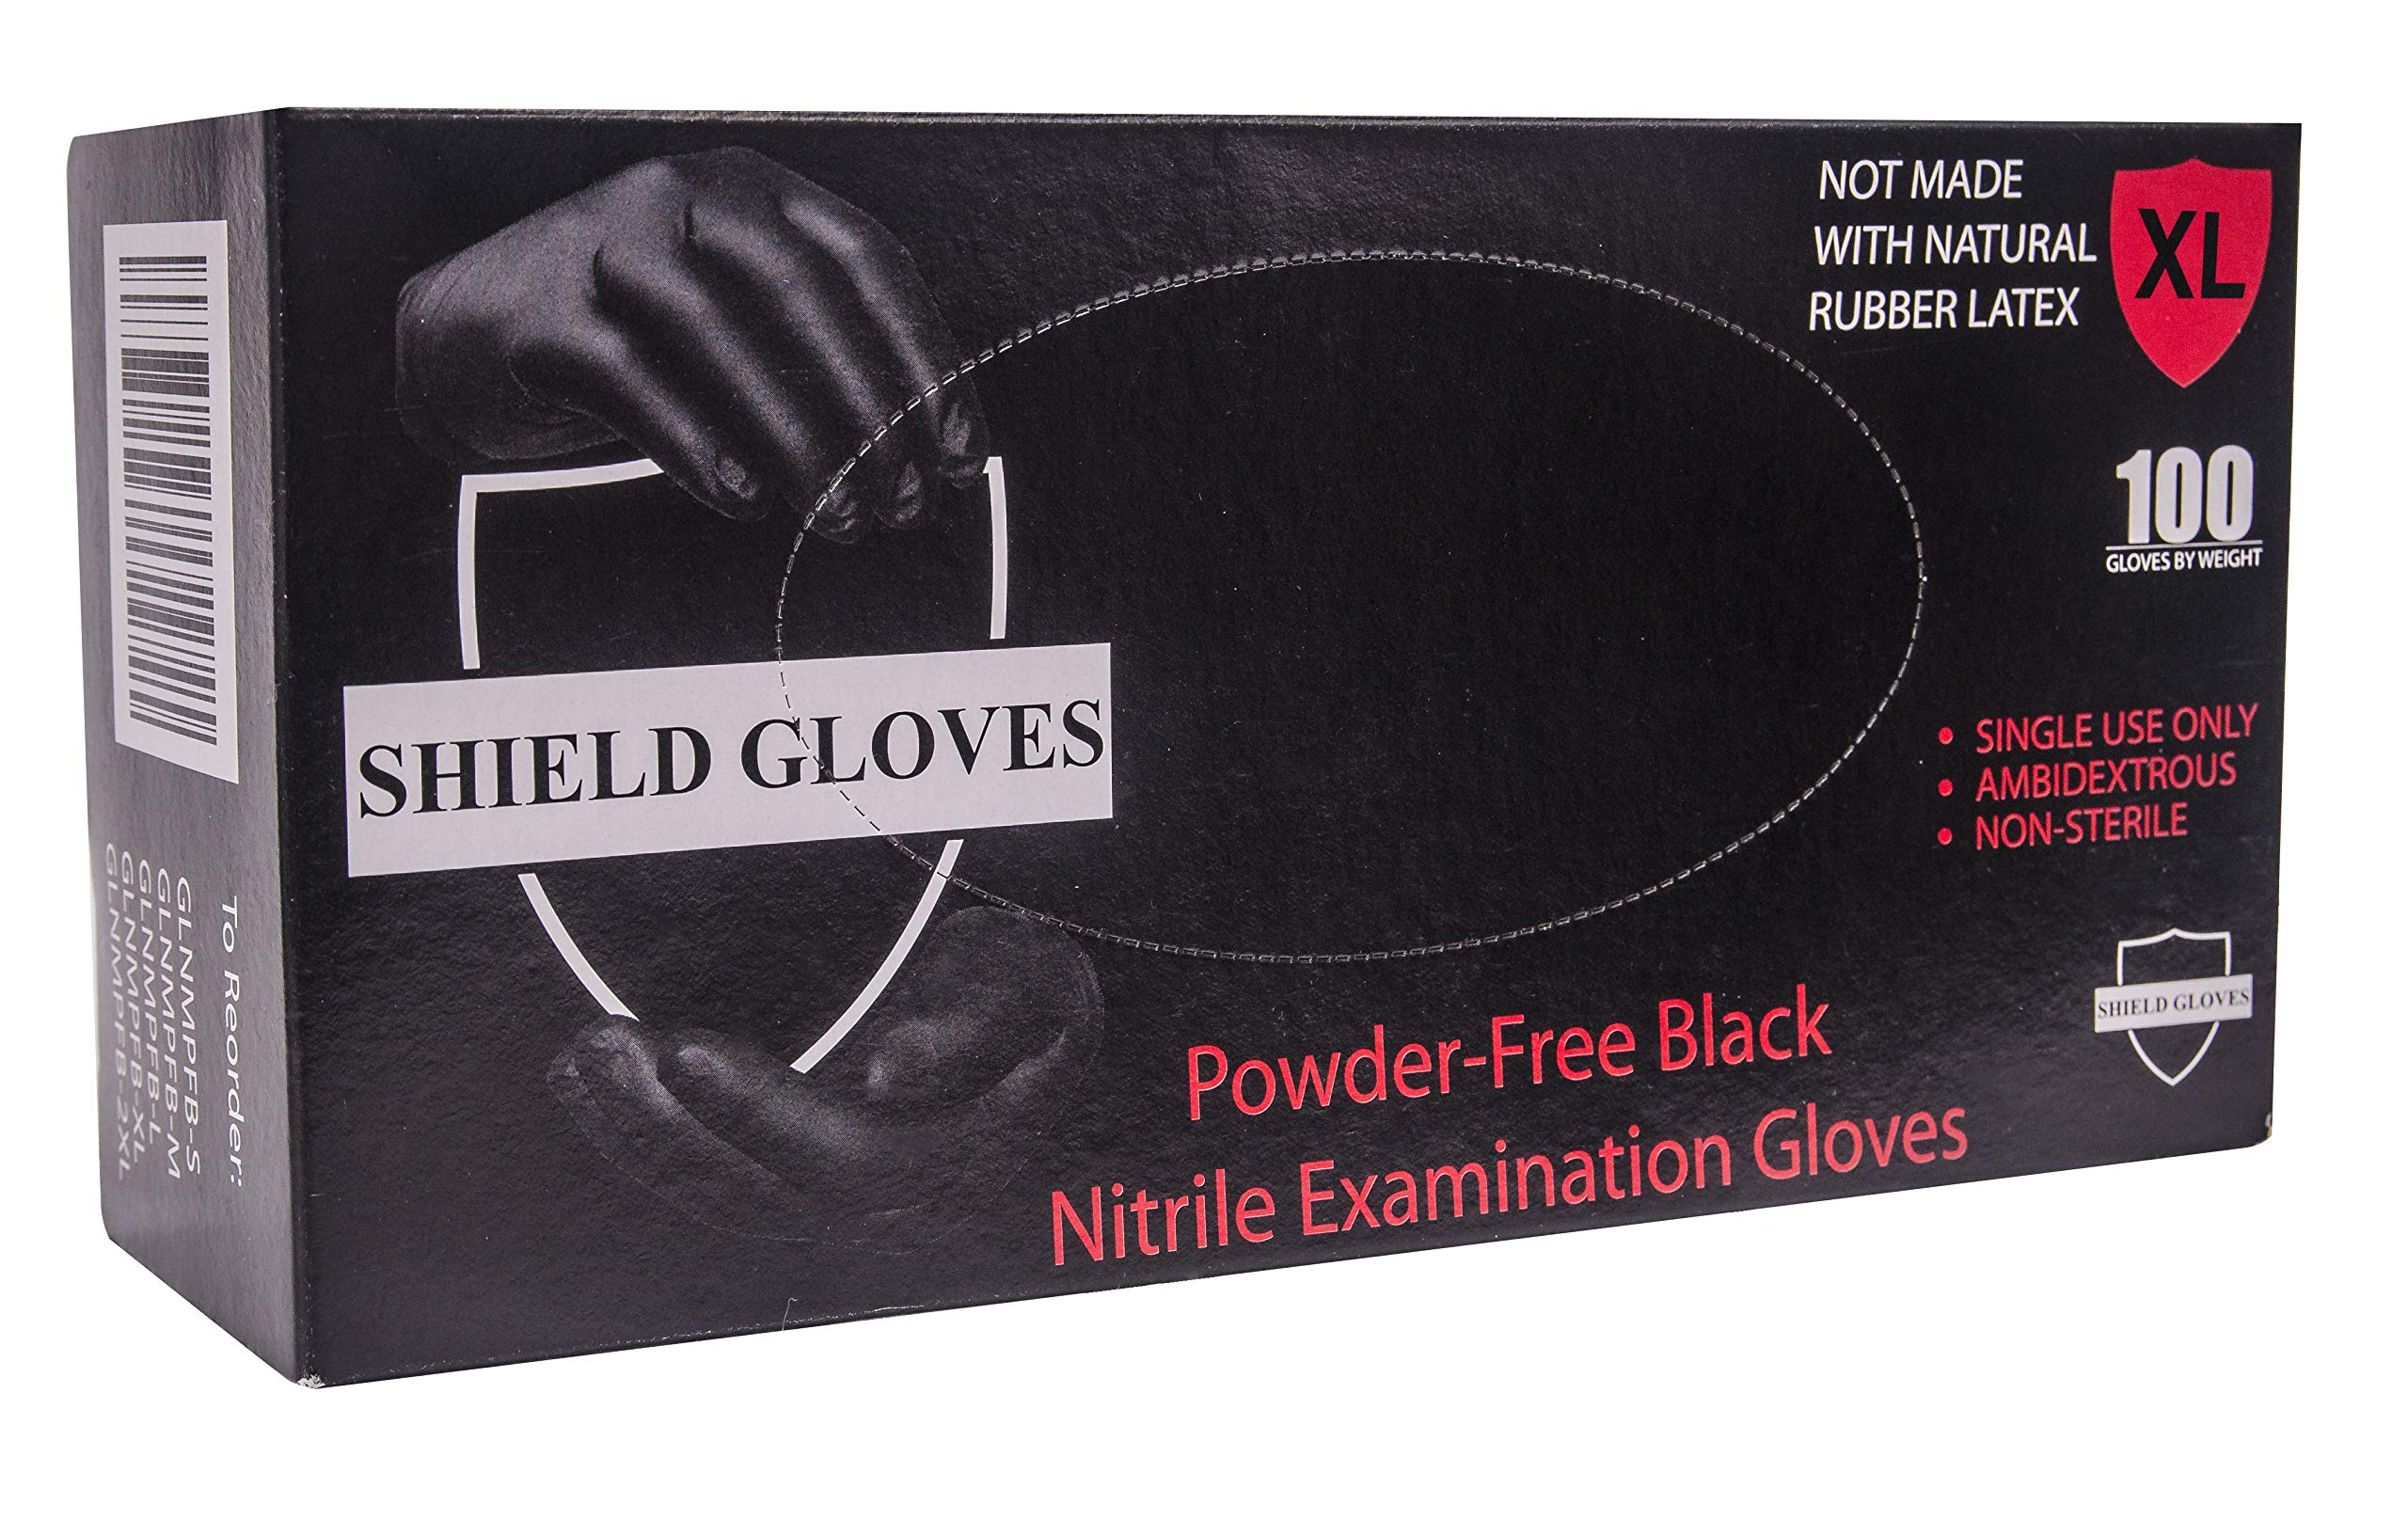 100 Pack Black Barrier Nitrile Examination Gloves. X-Large Chemical Resistant Powder Free Gloves. Disposable Finger Textured Latex Free Gloves for Medical use. Packaging in bulk, wholesale price.